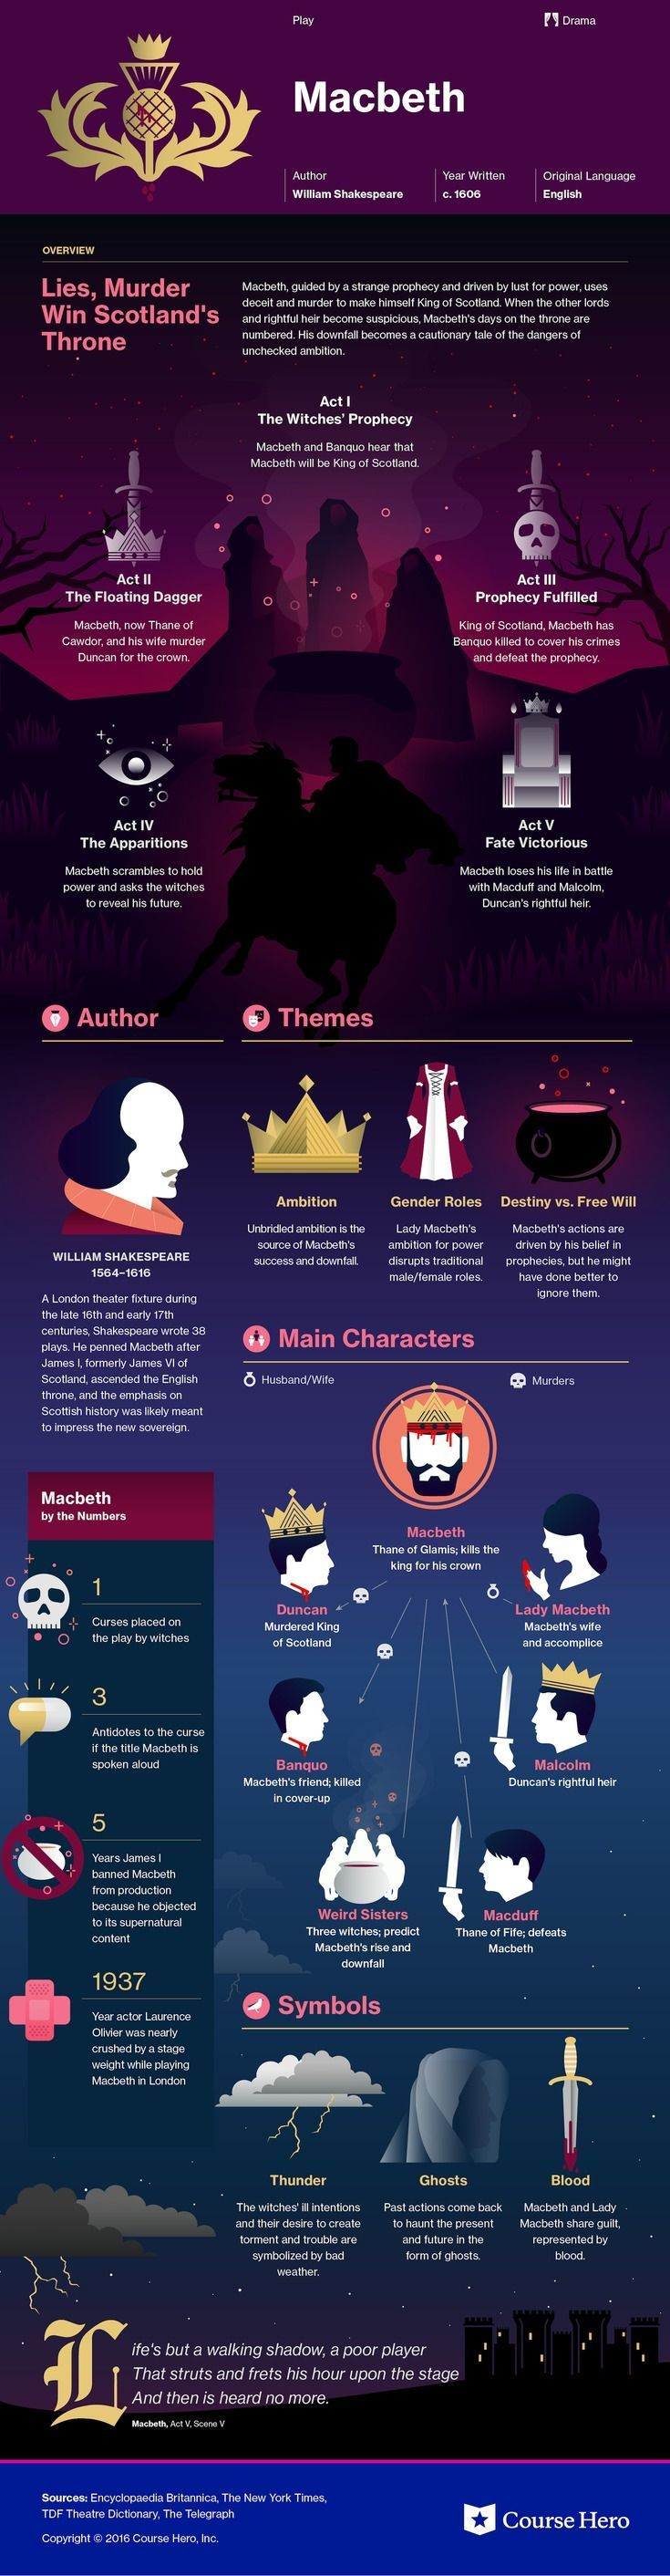 best ideas about plot of macbeth macbeth plot william shakespeare s macbeth infographic to help you understand everything about the book visually learn all about the characters themes